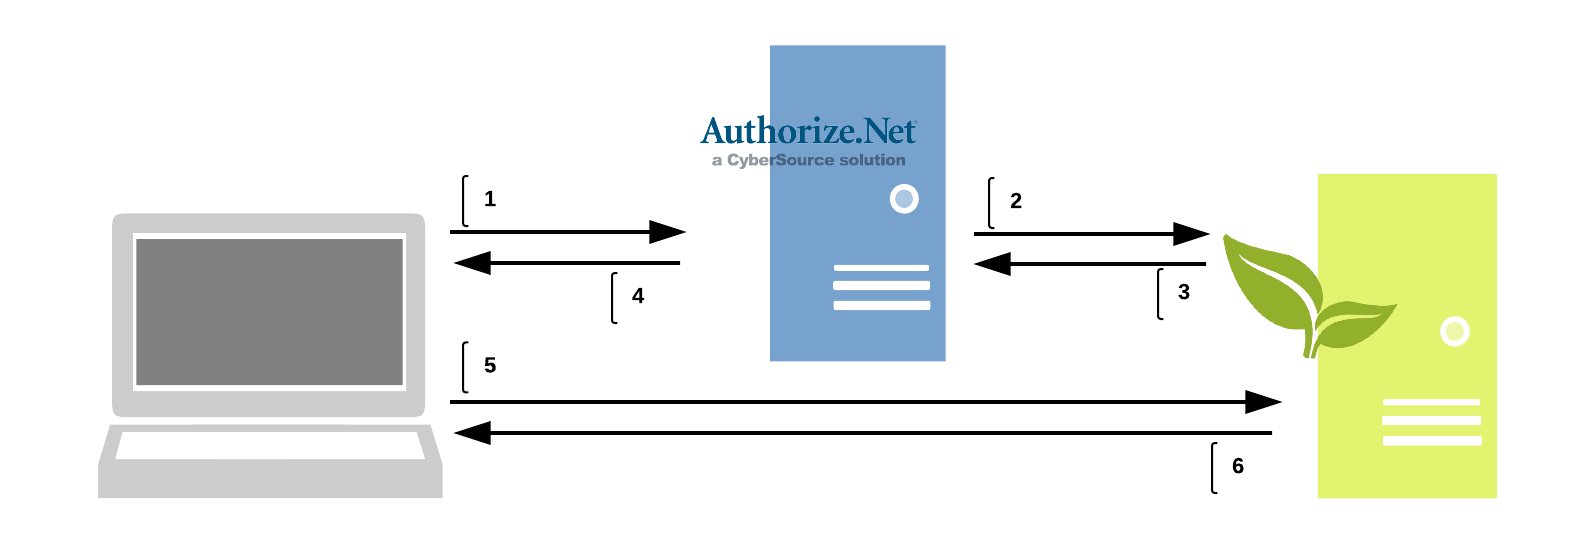 Authorize.net DPM Diagram